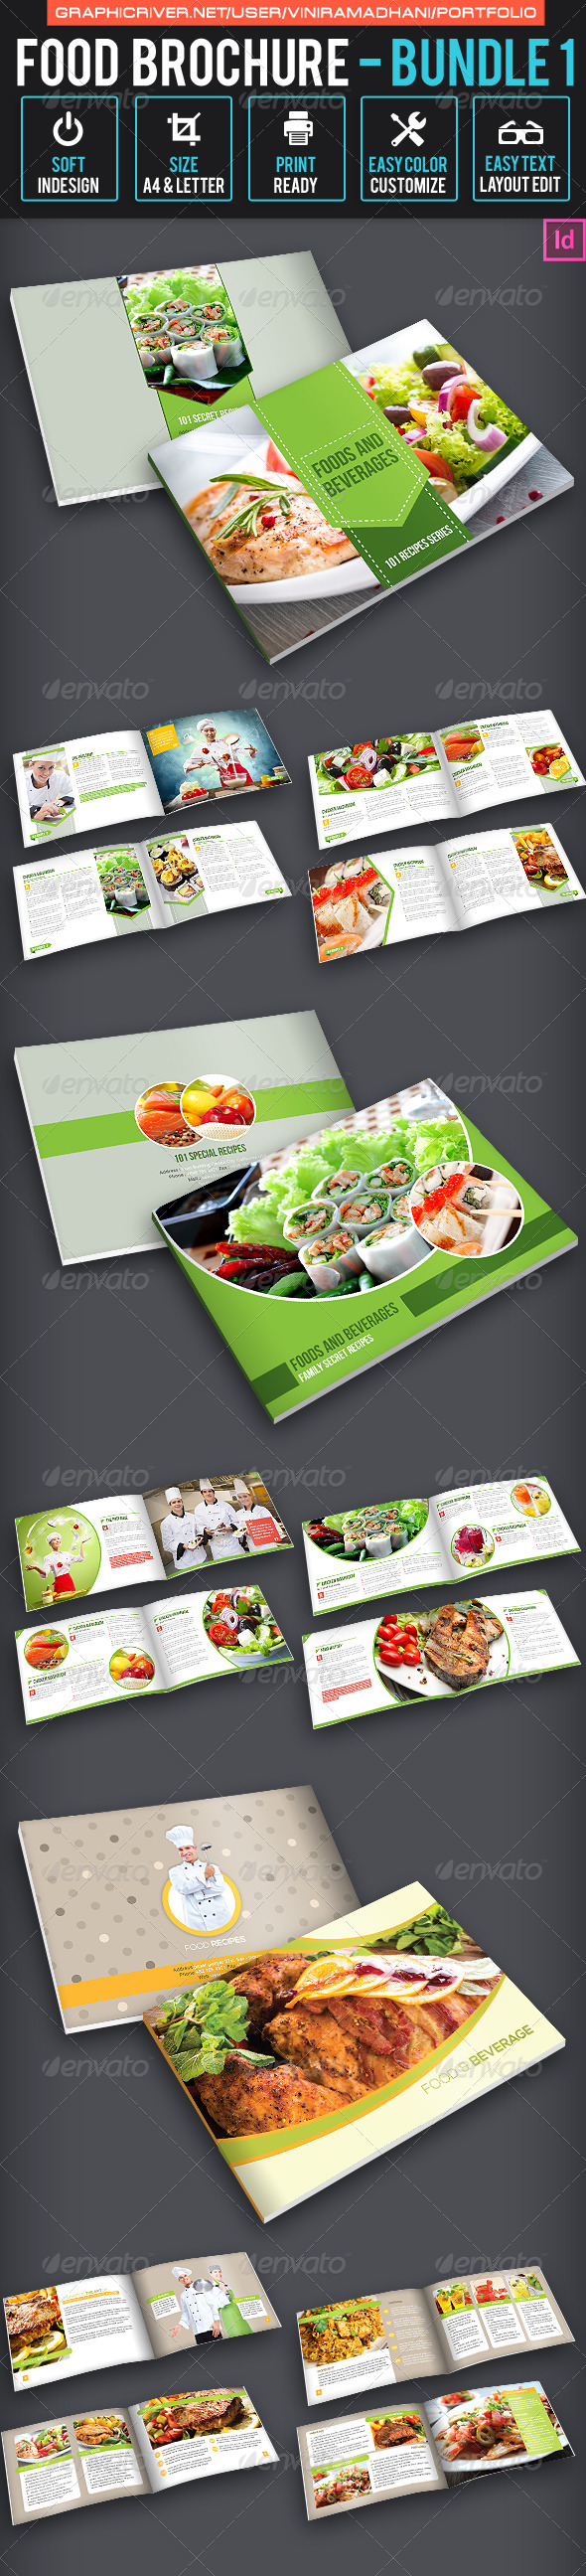 GraphicRiver Food Brochure Bundle 1 7326015